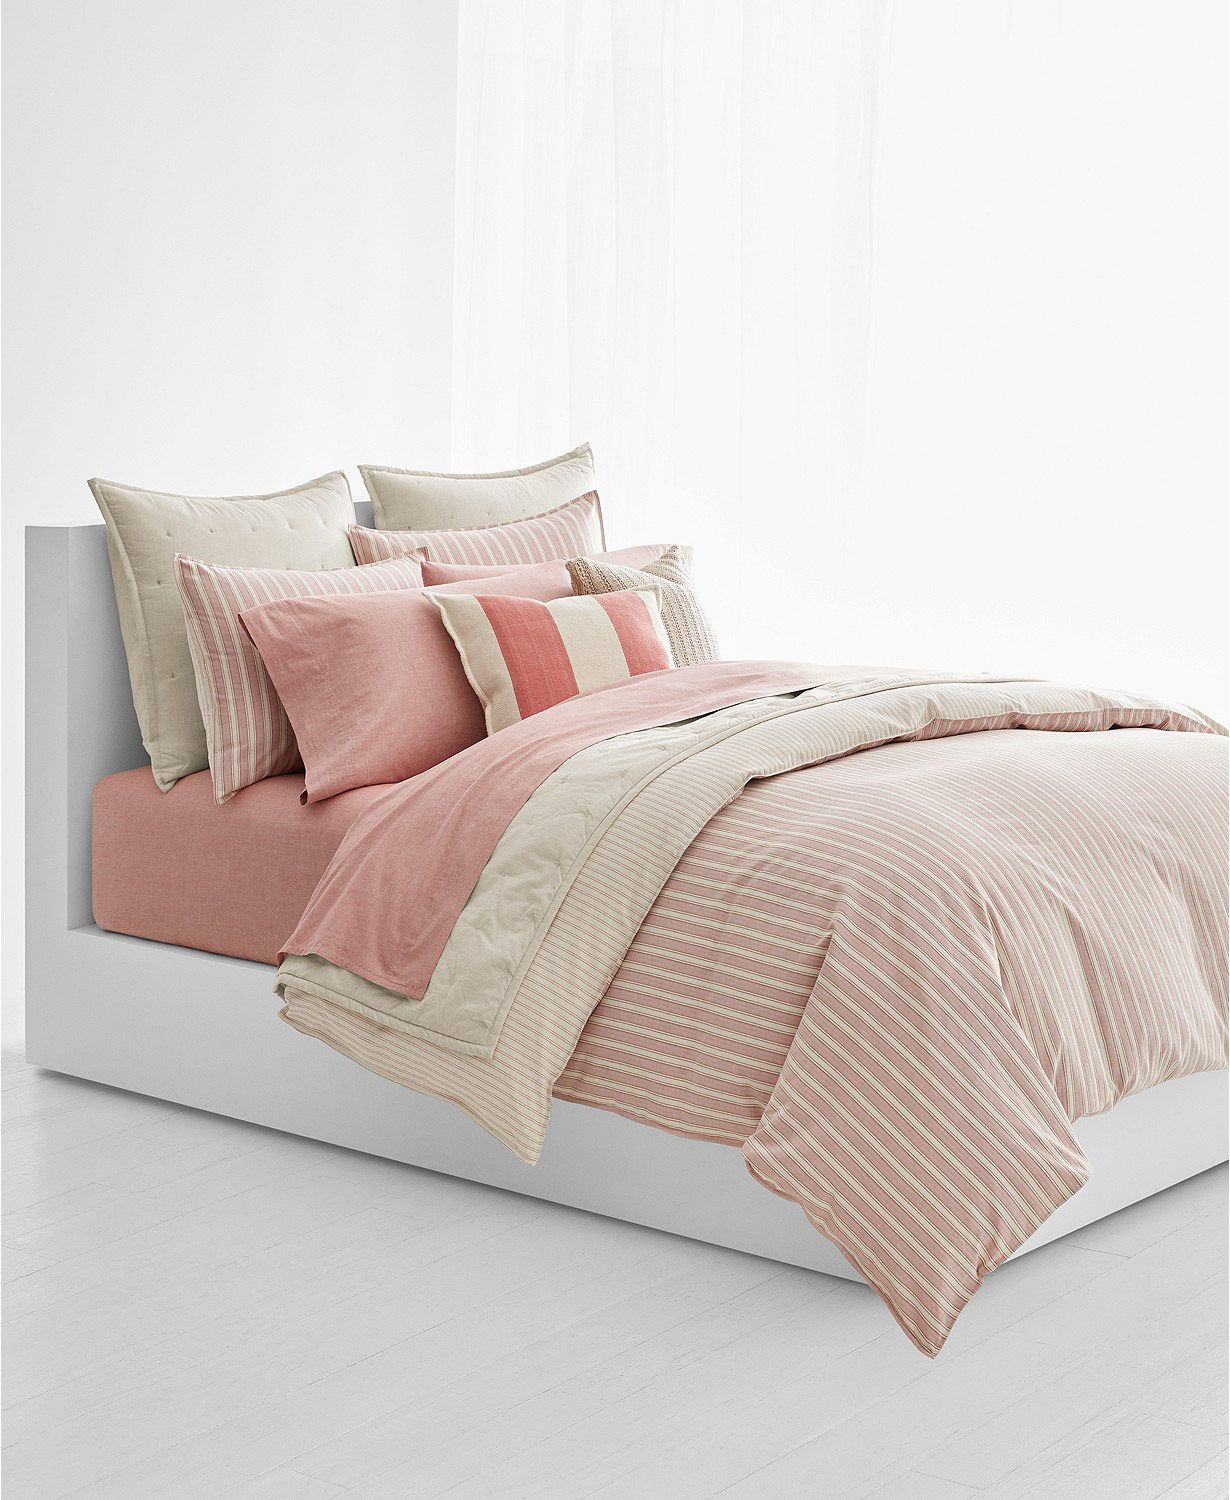 Macy S Bedding Closeout Sale 2019